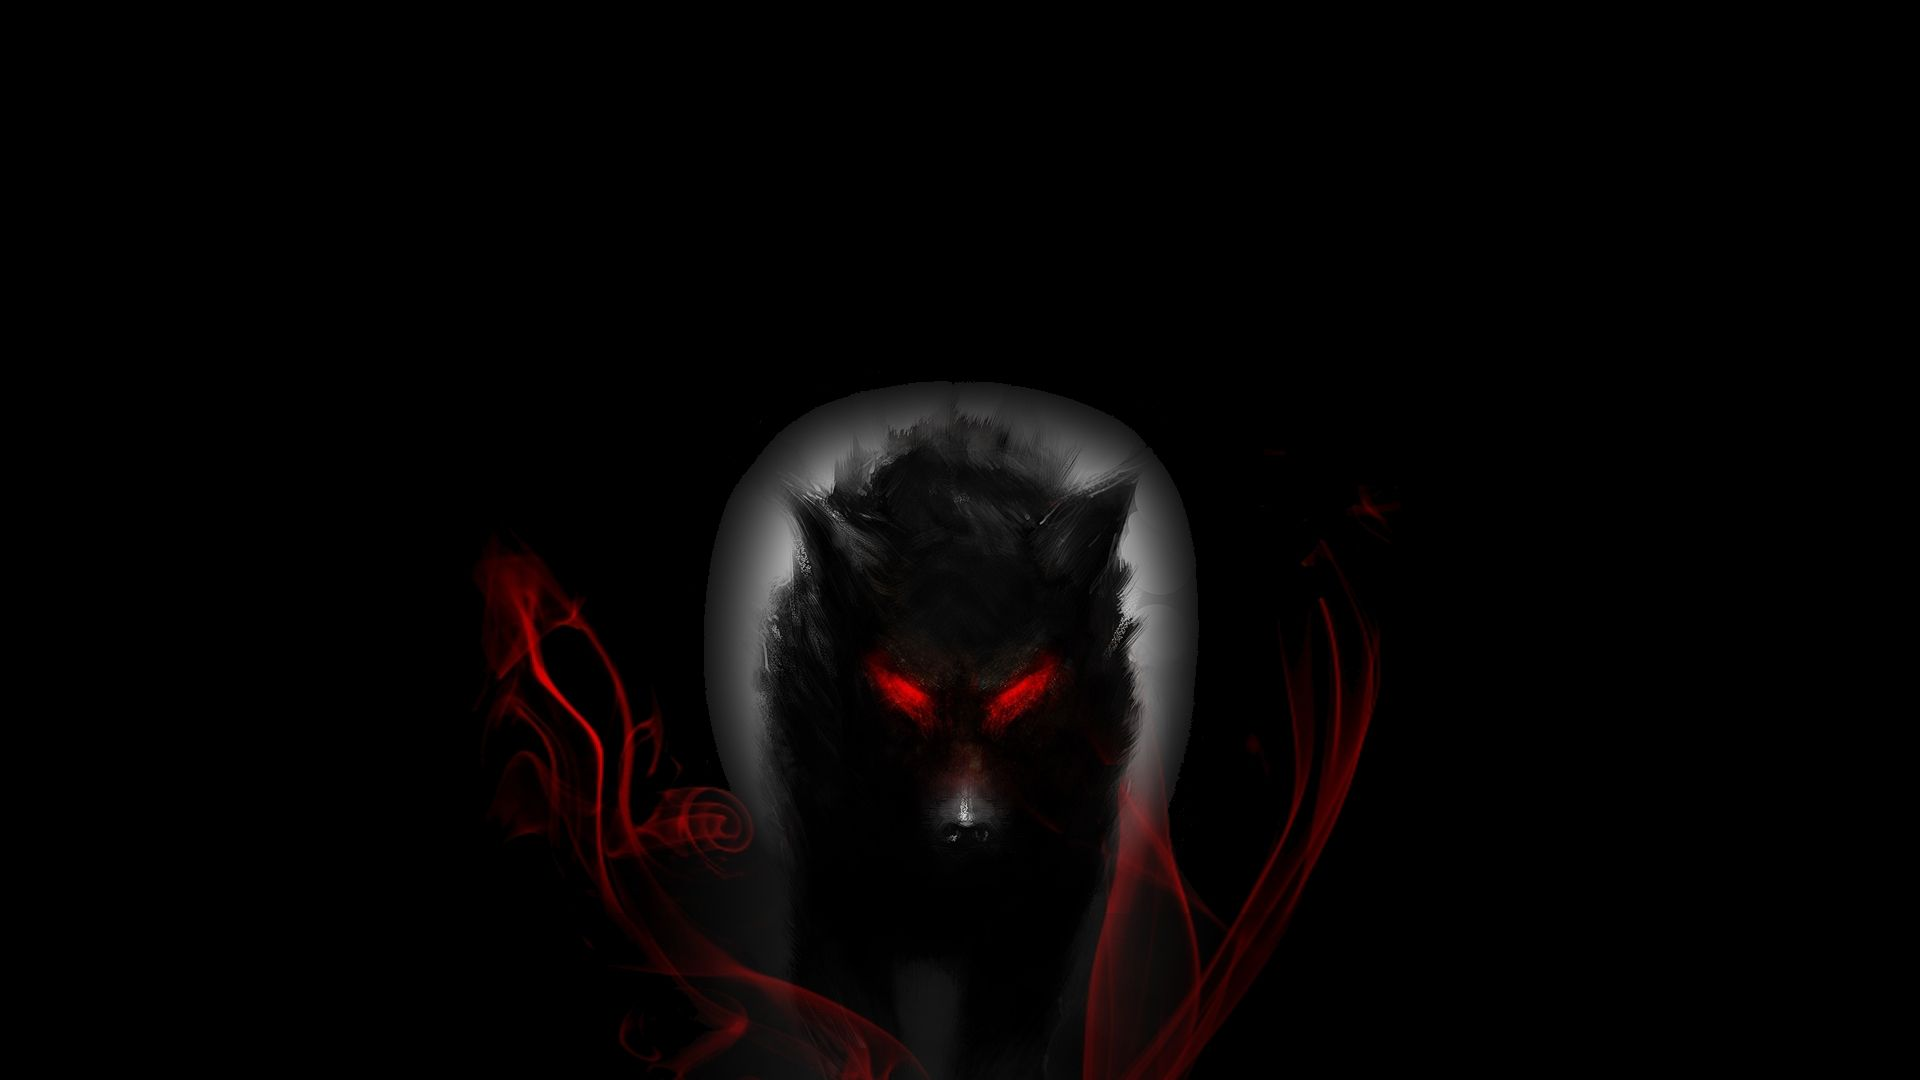 Anime Wolf Wallpapers Wallpaper 1920 1080 Animated Wolf Wallpapers 41 Wallpapers Adorable Wallpapers Planos De Fundo